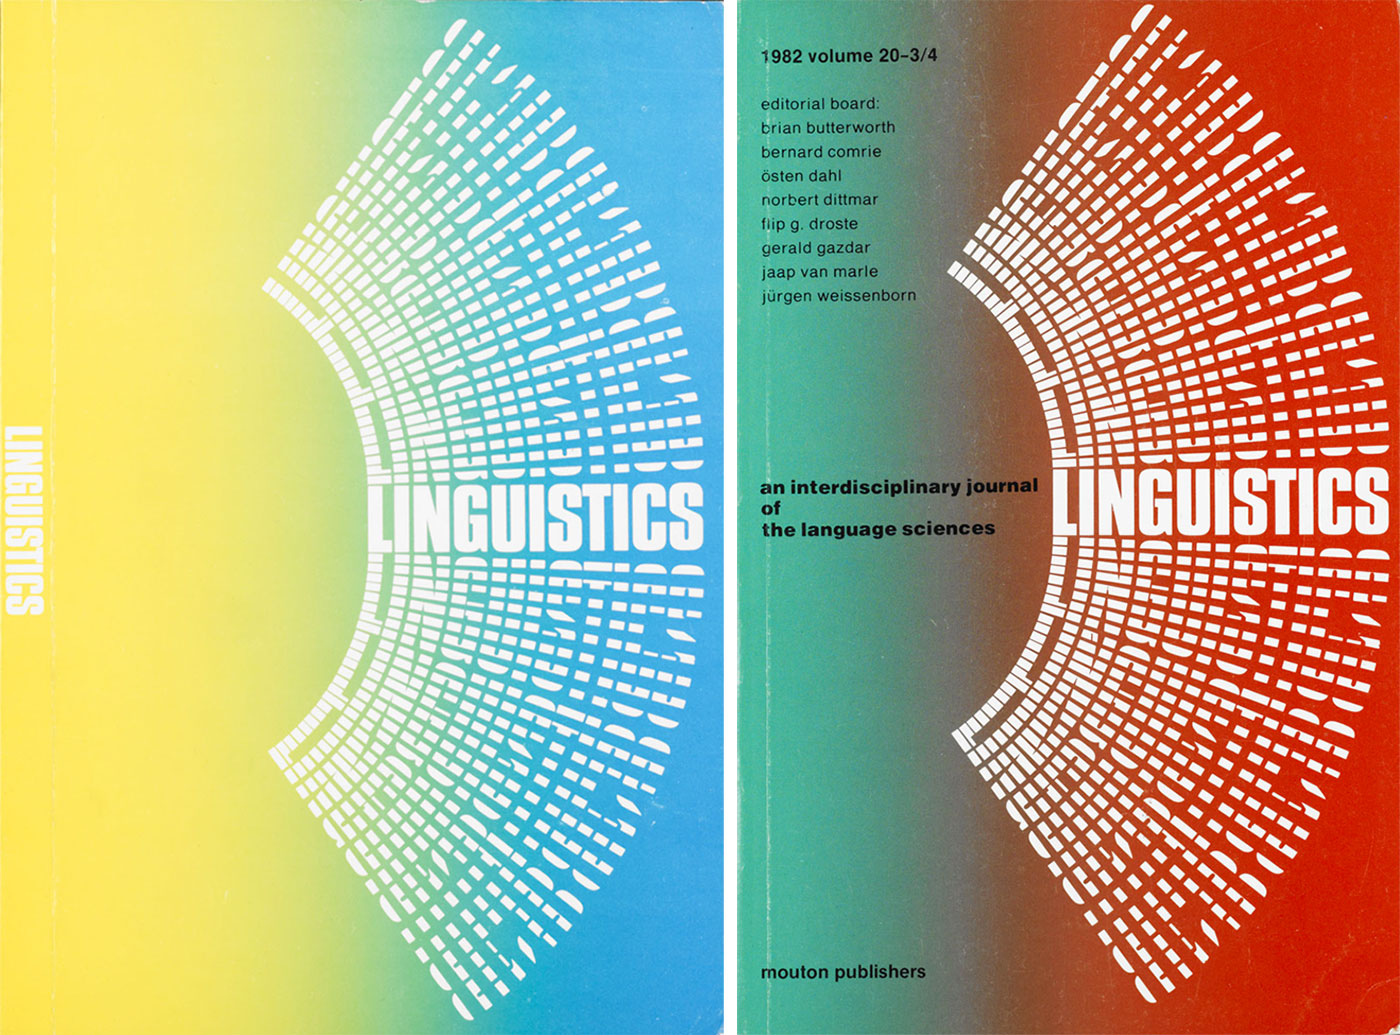 Jurriaan-Schrofer-linguistics-1979